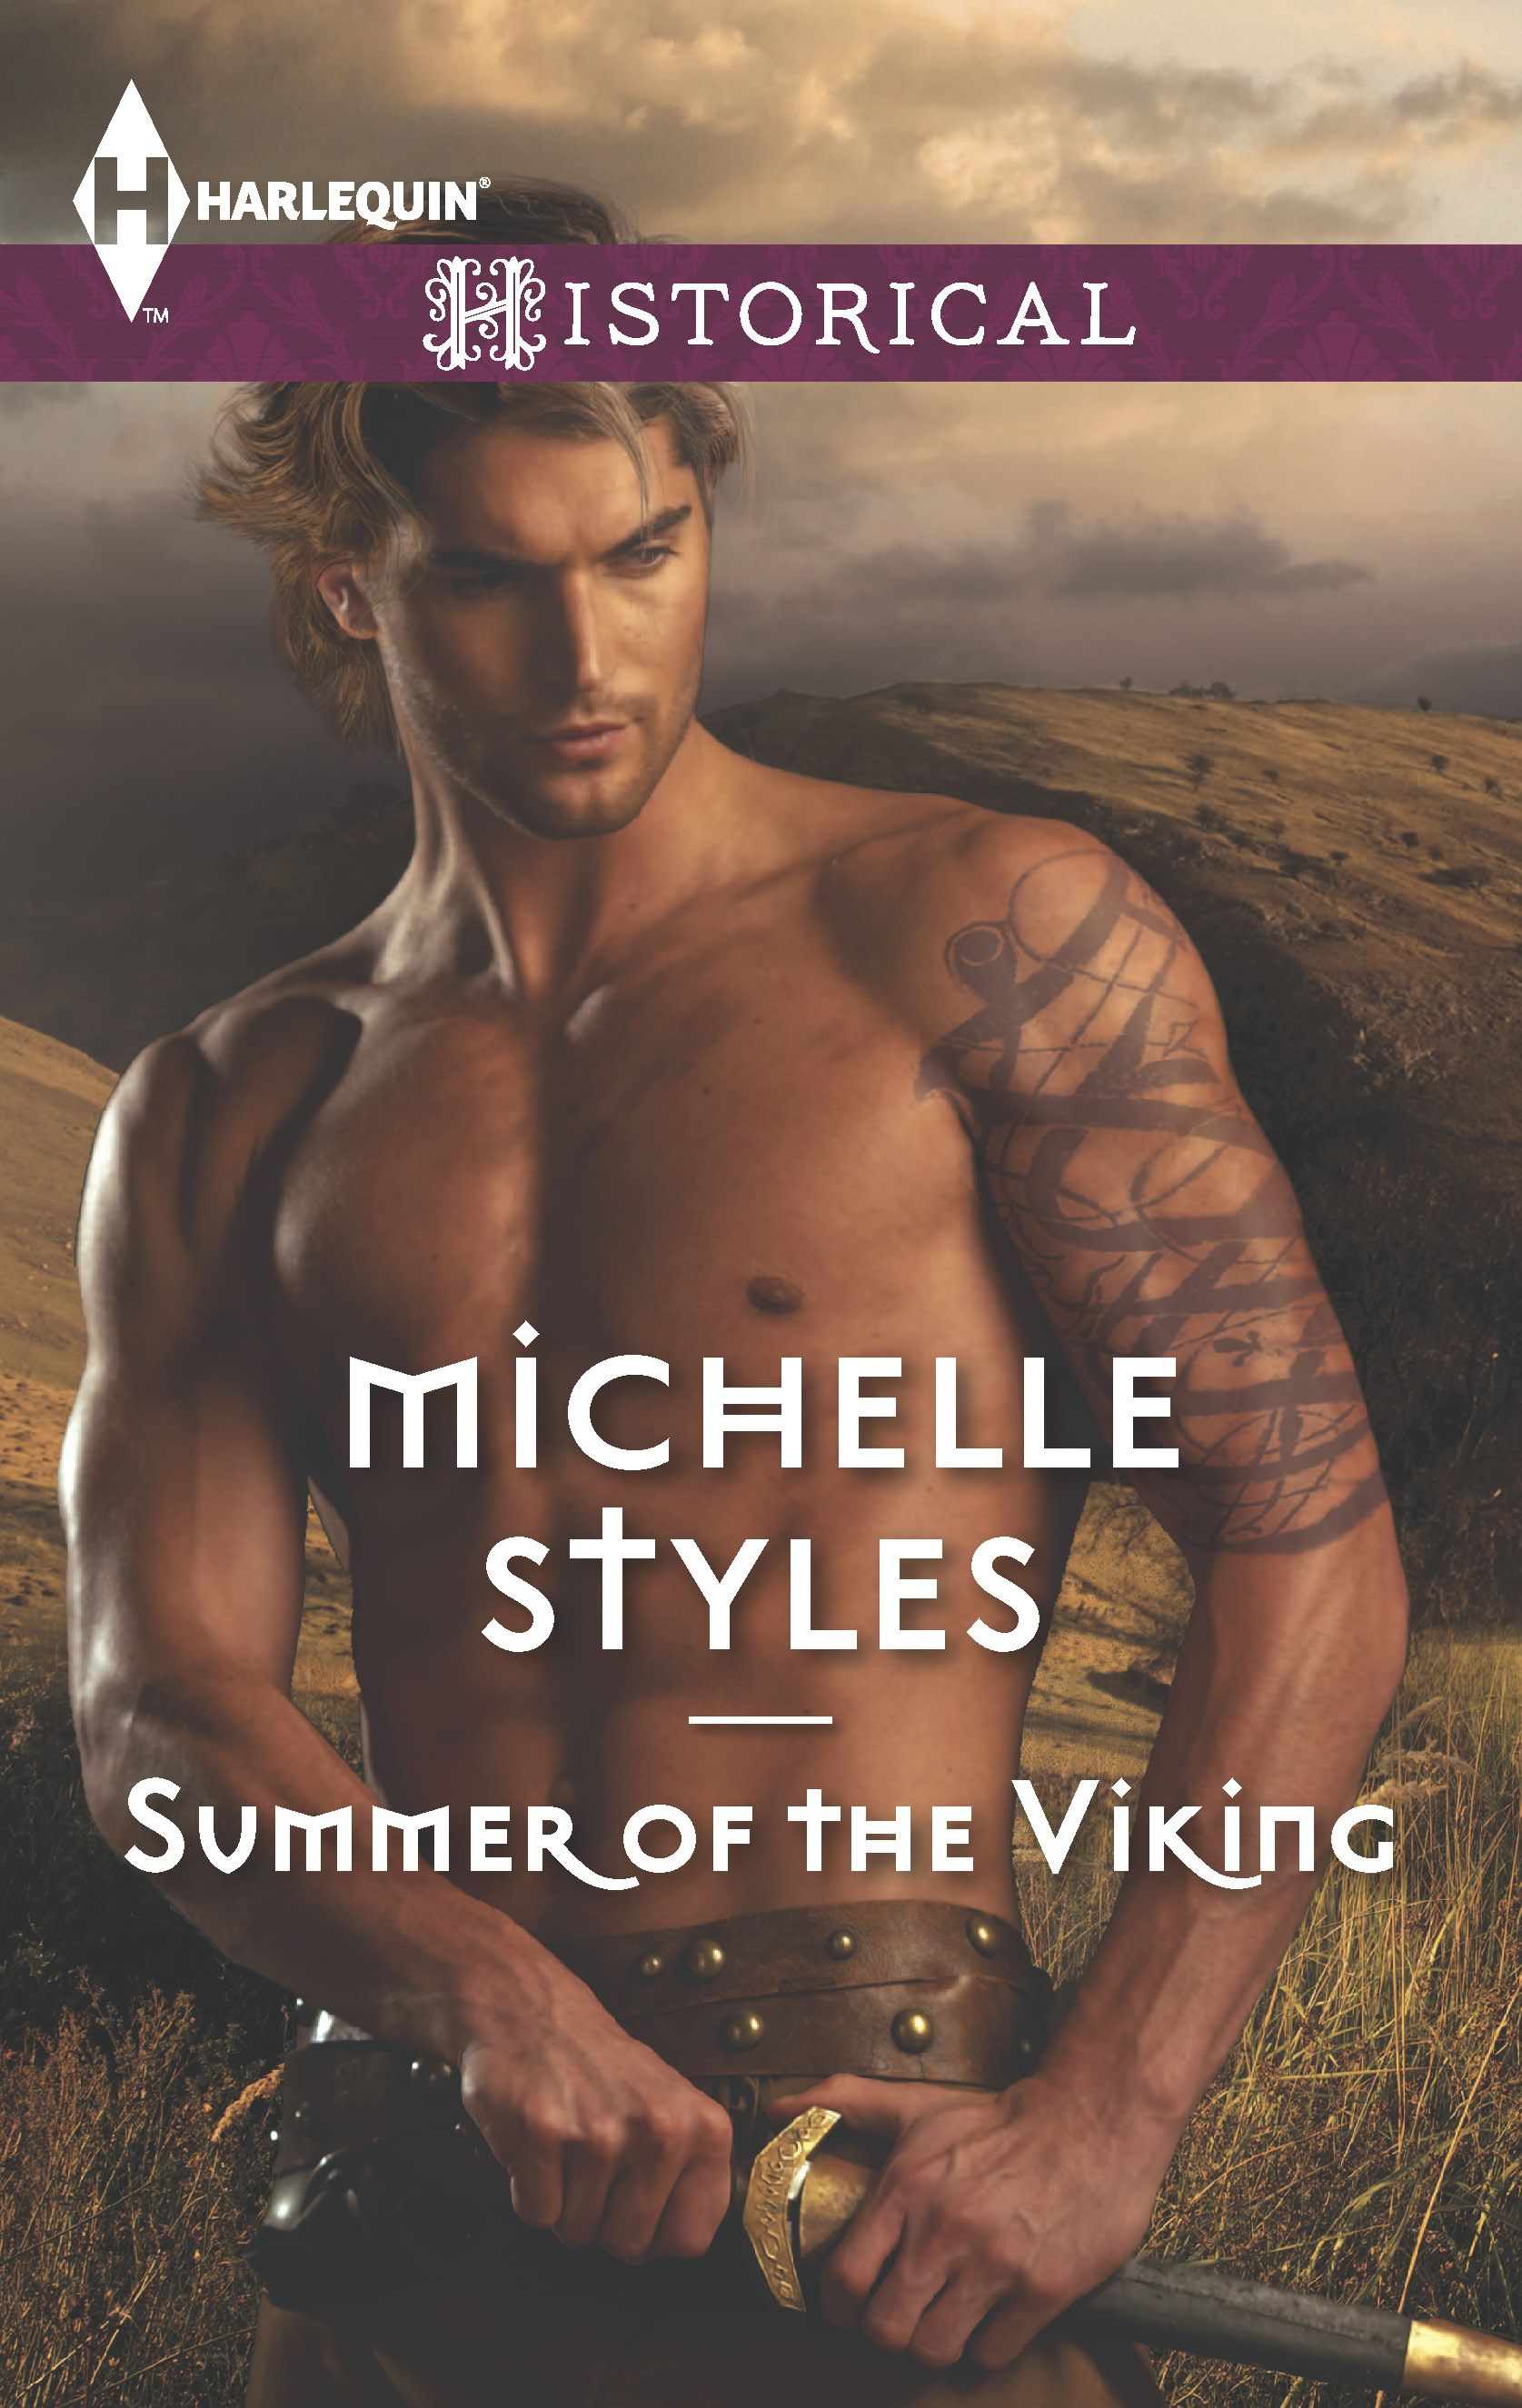 SummeroftheViking